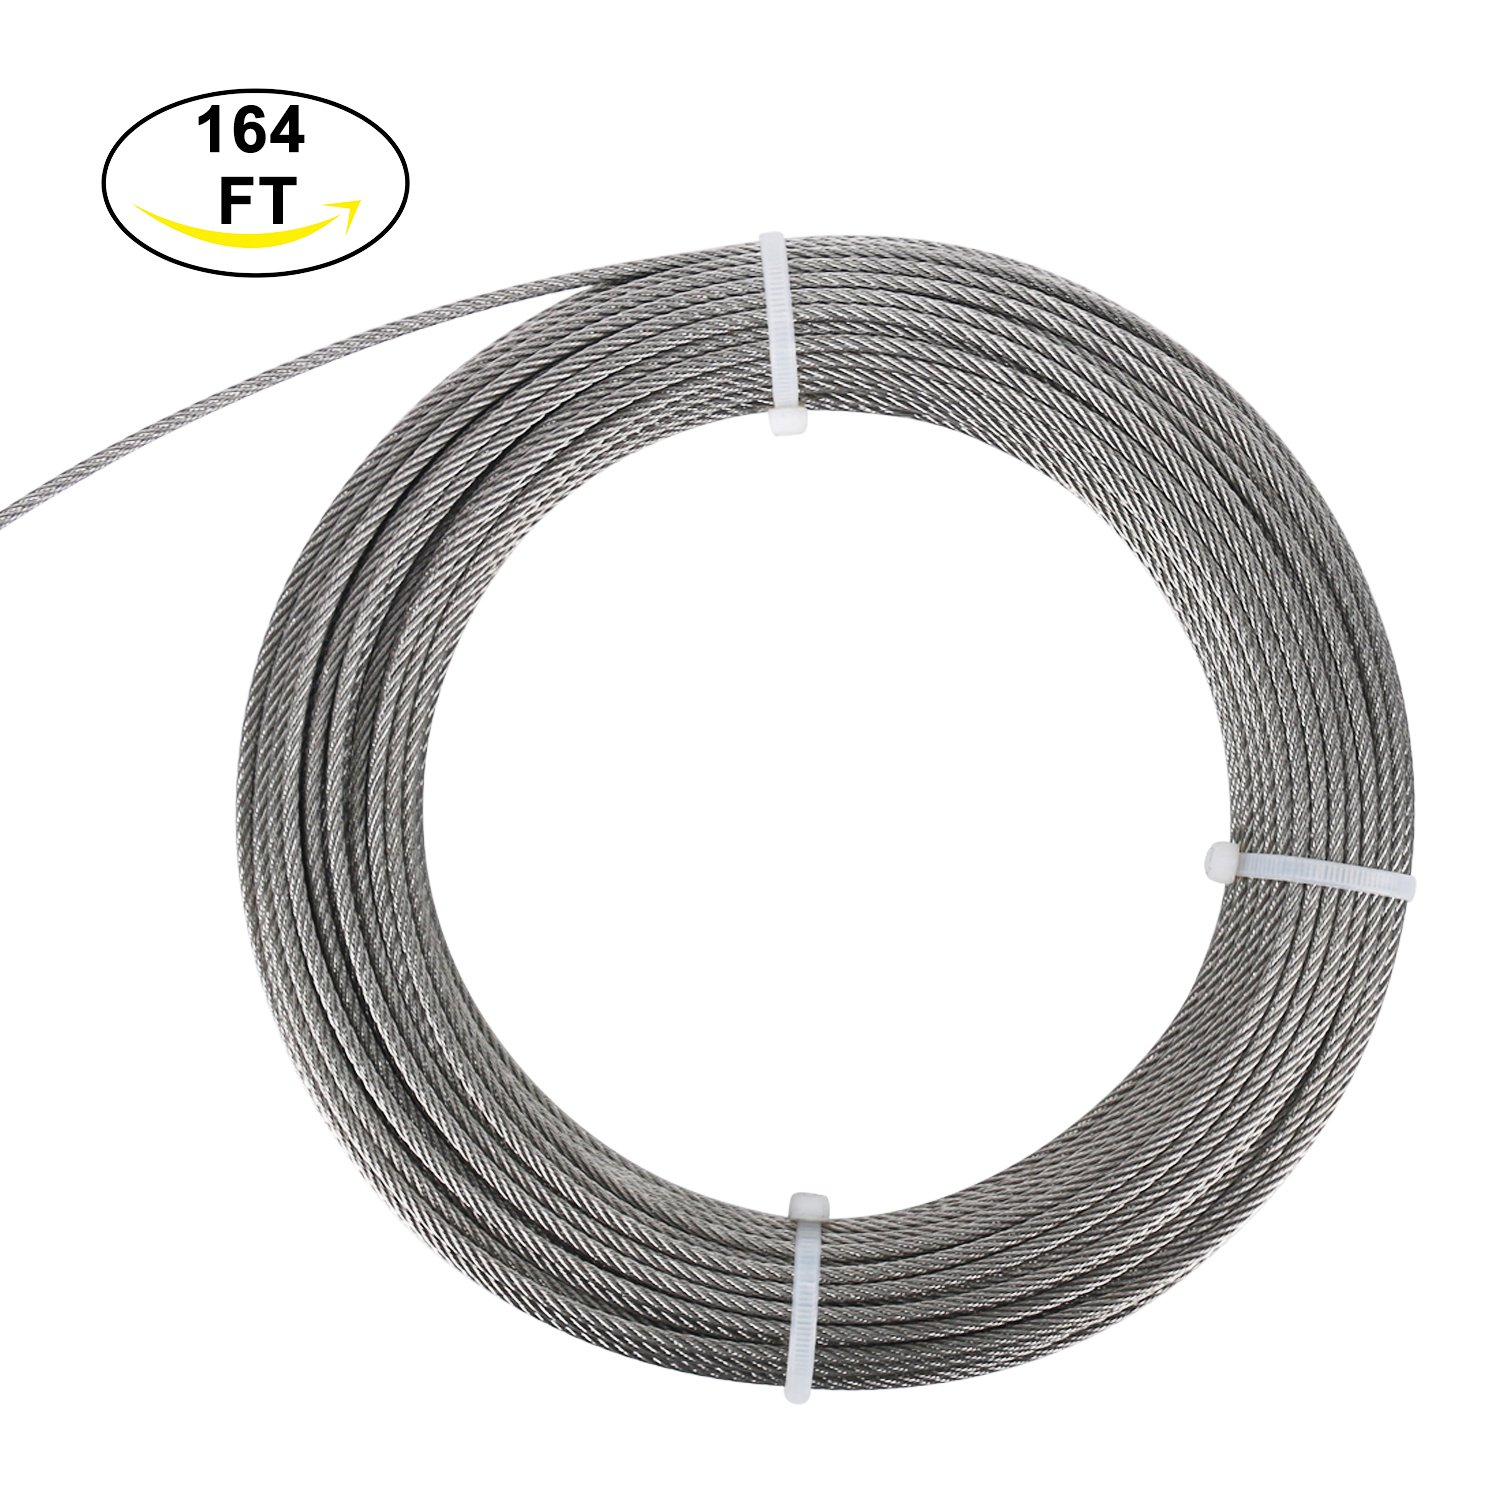 DasMarine Stainless Aircraft Steel Wire Rope Cable for Railing,Decking, DIY Balustrade, 1/8Inch,7x7,164Feet by DasMarine (Image #2)